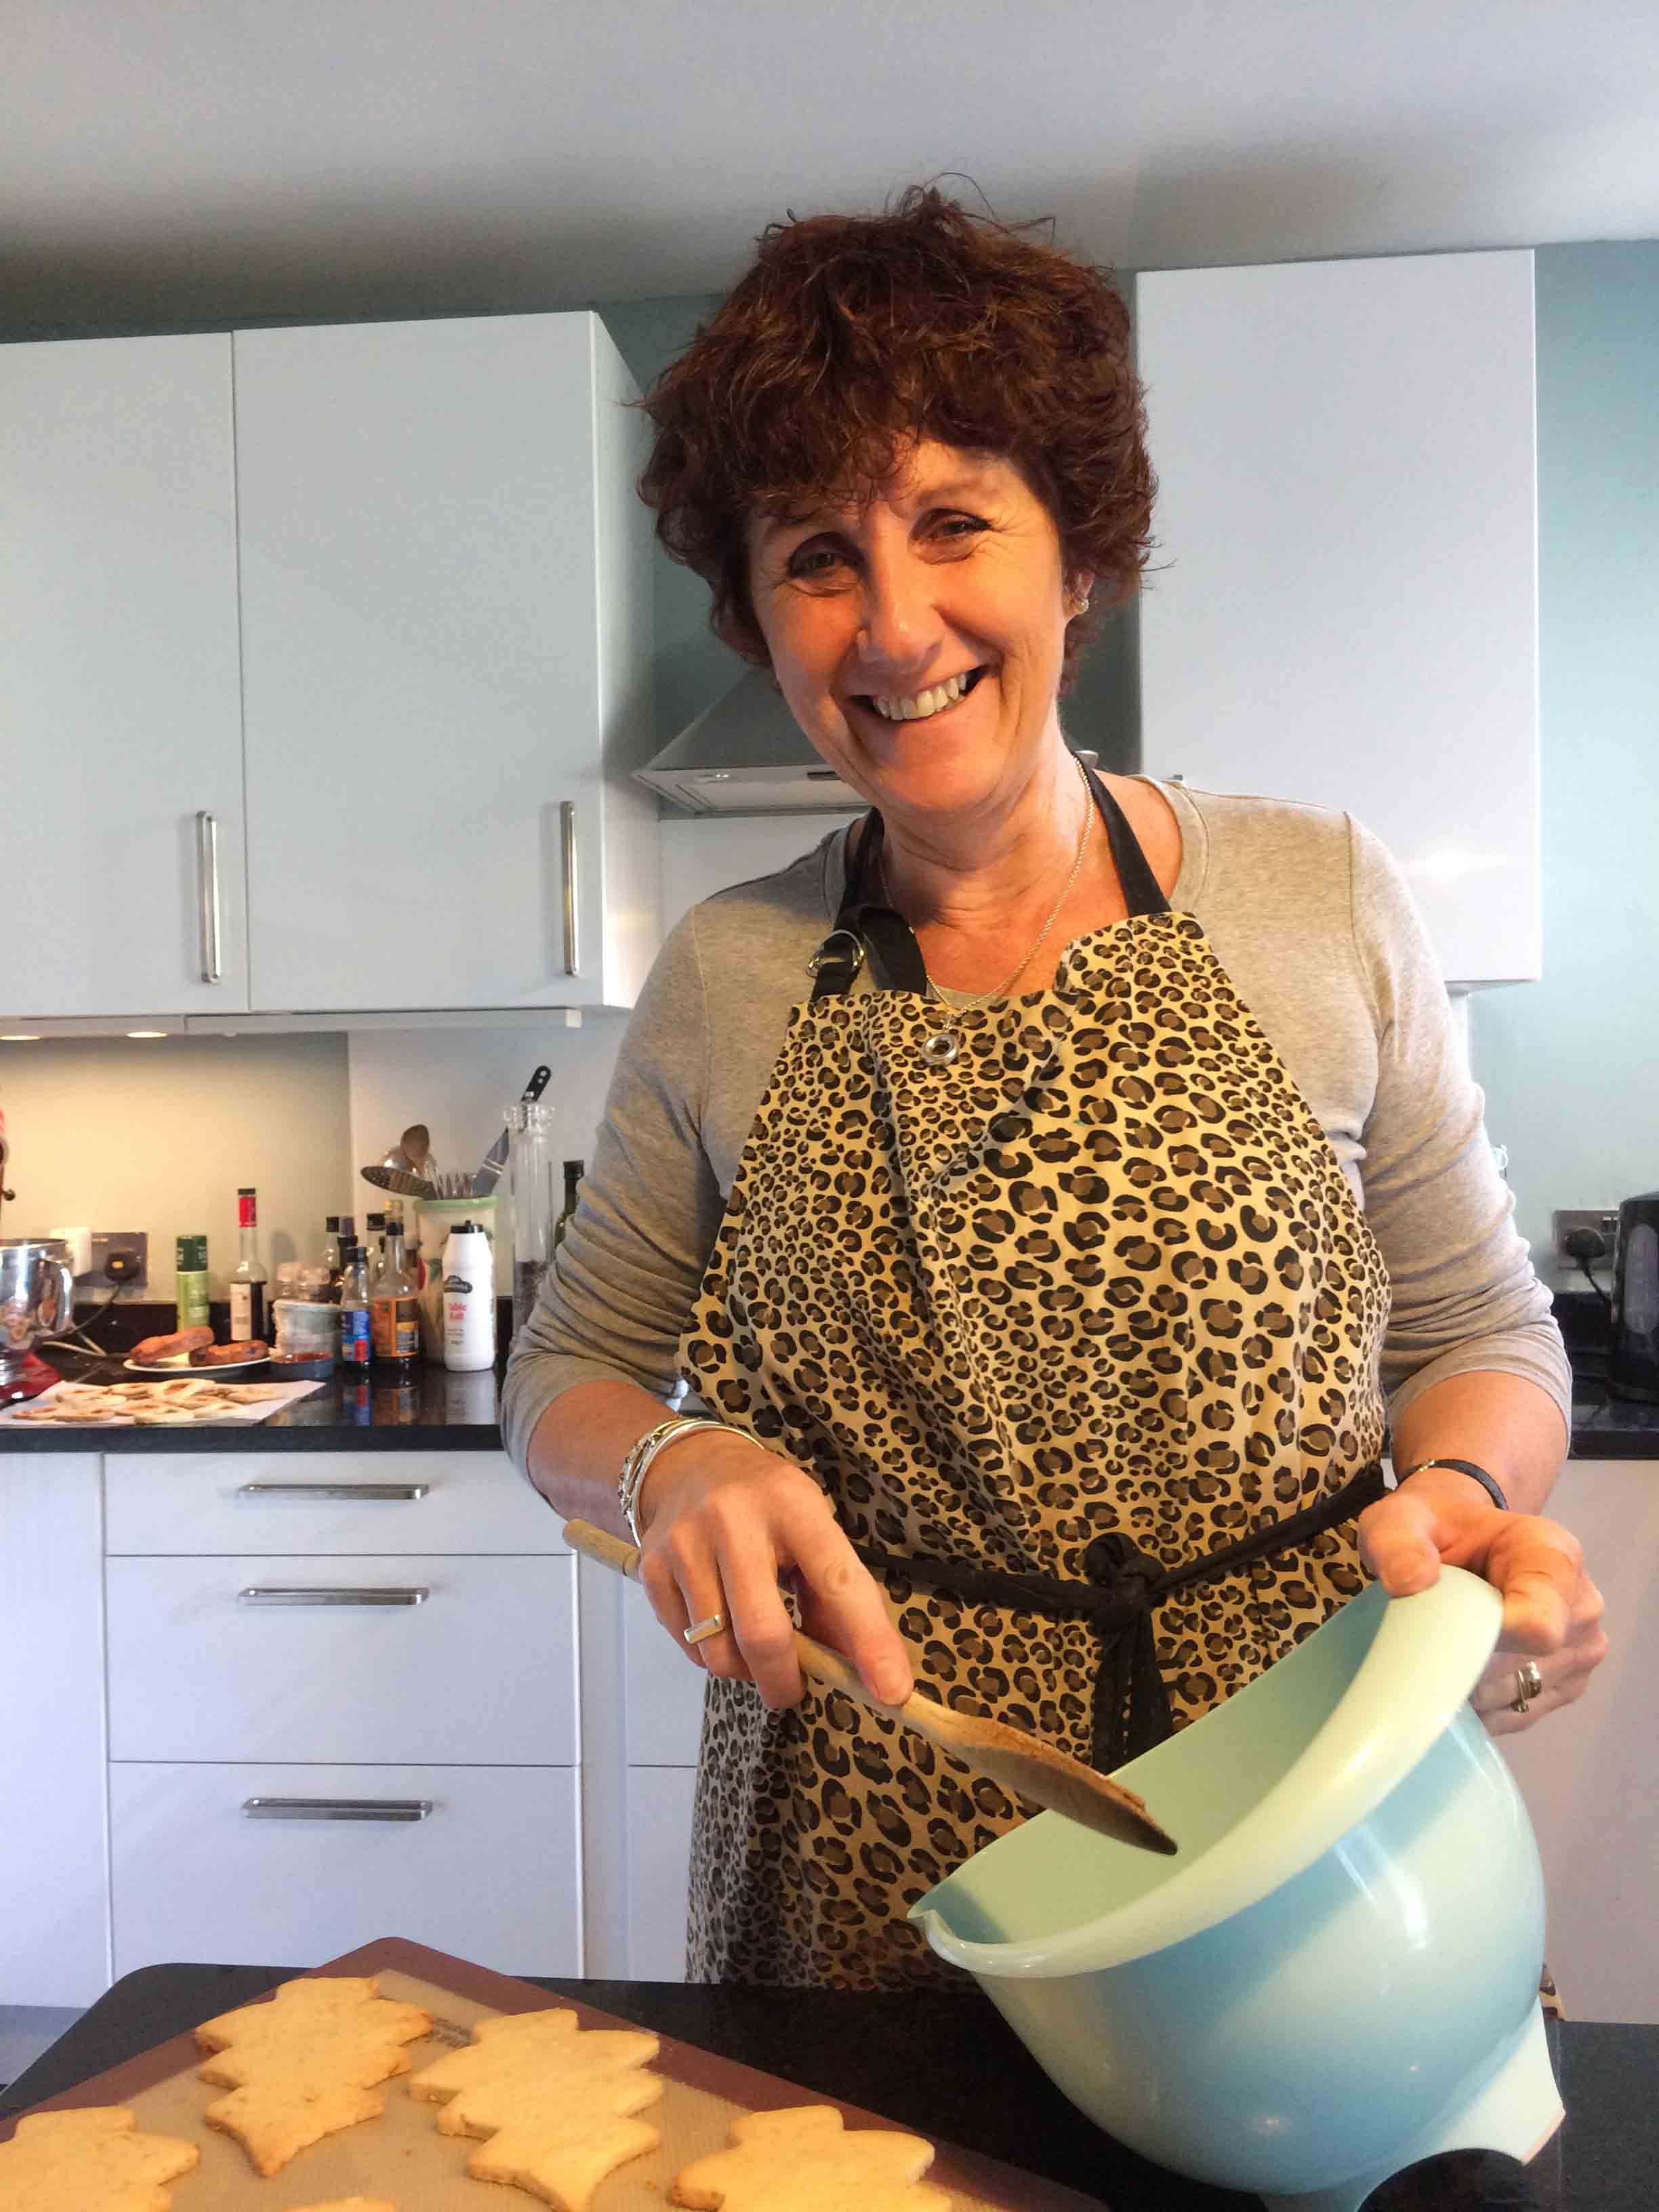 jane-beedle-in-kitchen-2-for-the-web